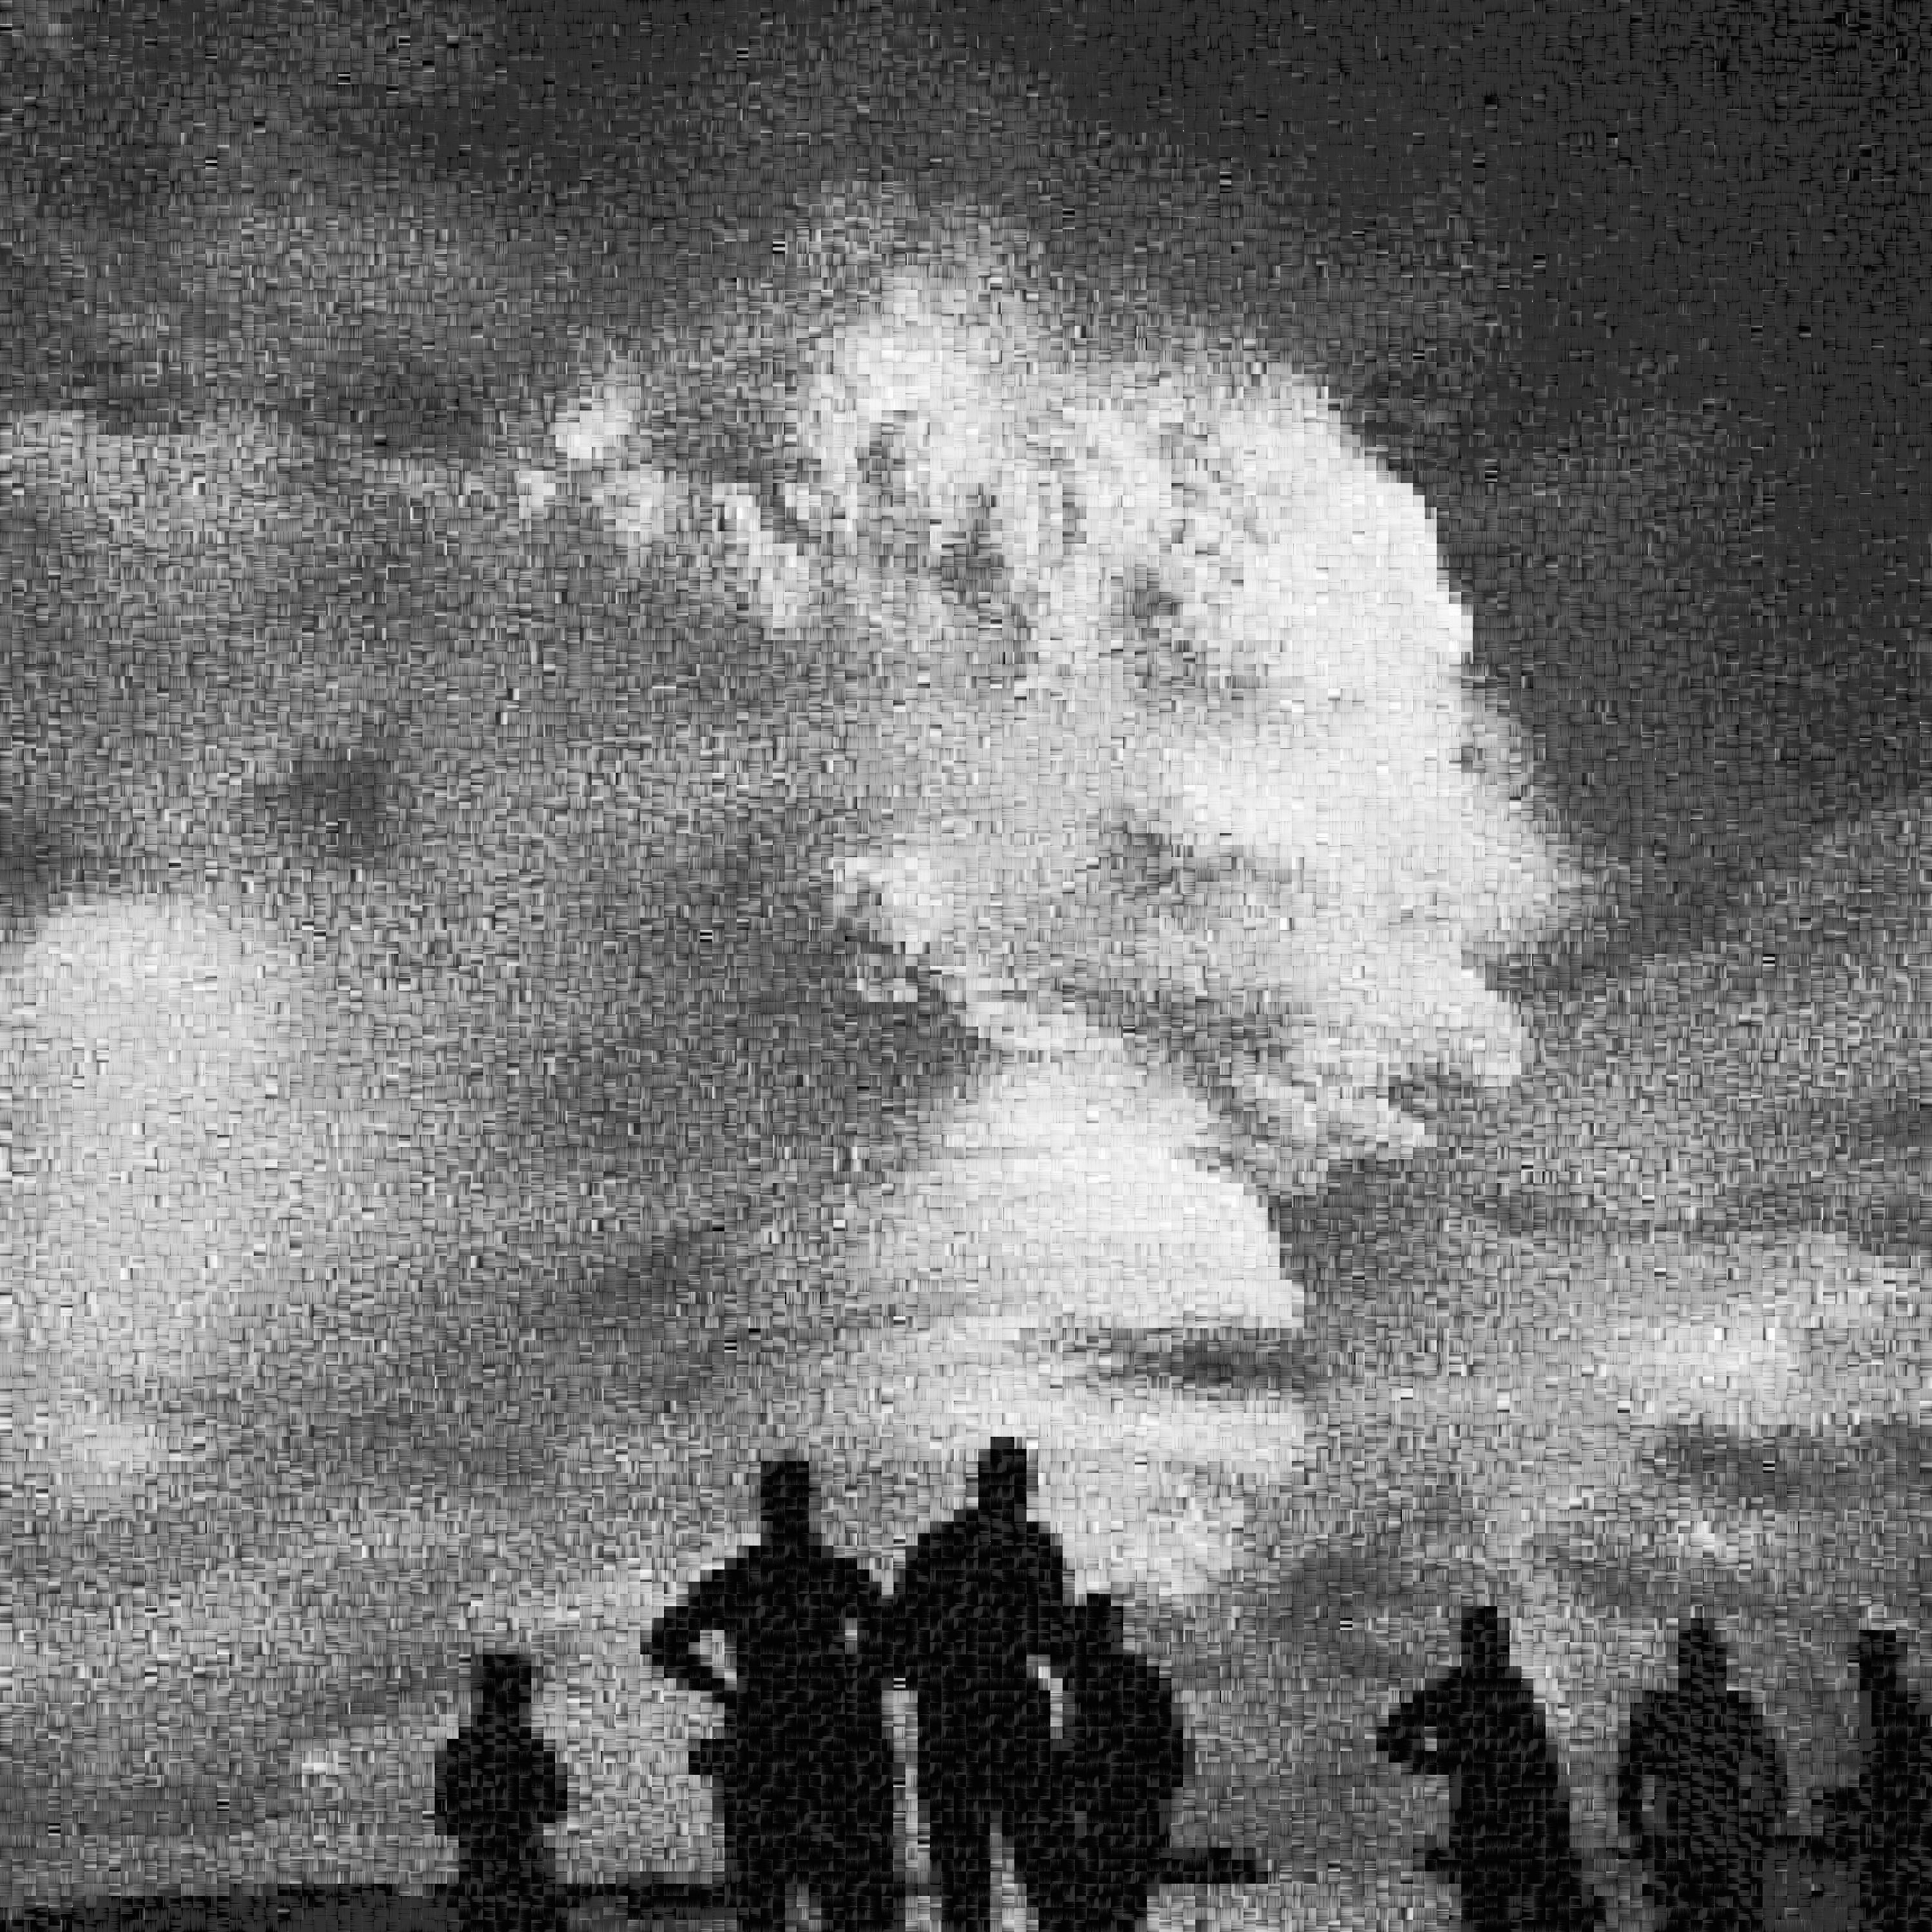 Operation Hardtack: Oak - Declassified Military Bomb Test Photo Abstraction